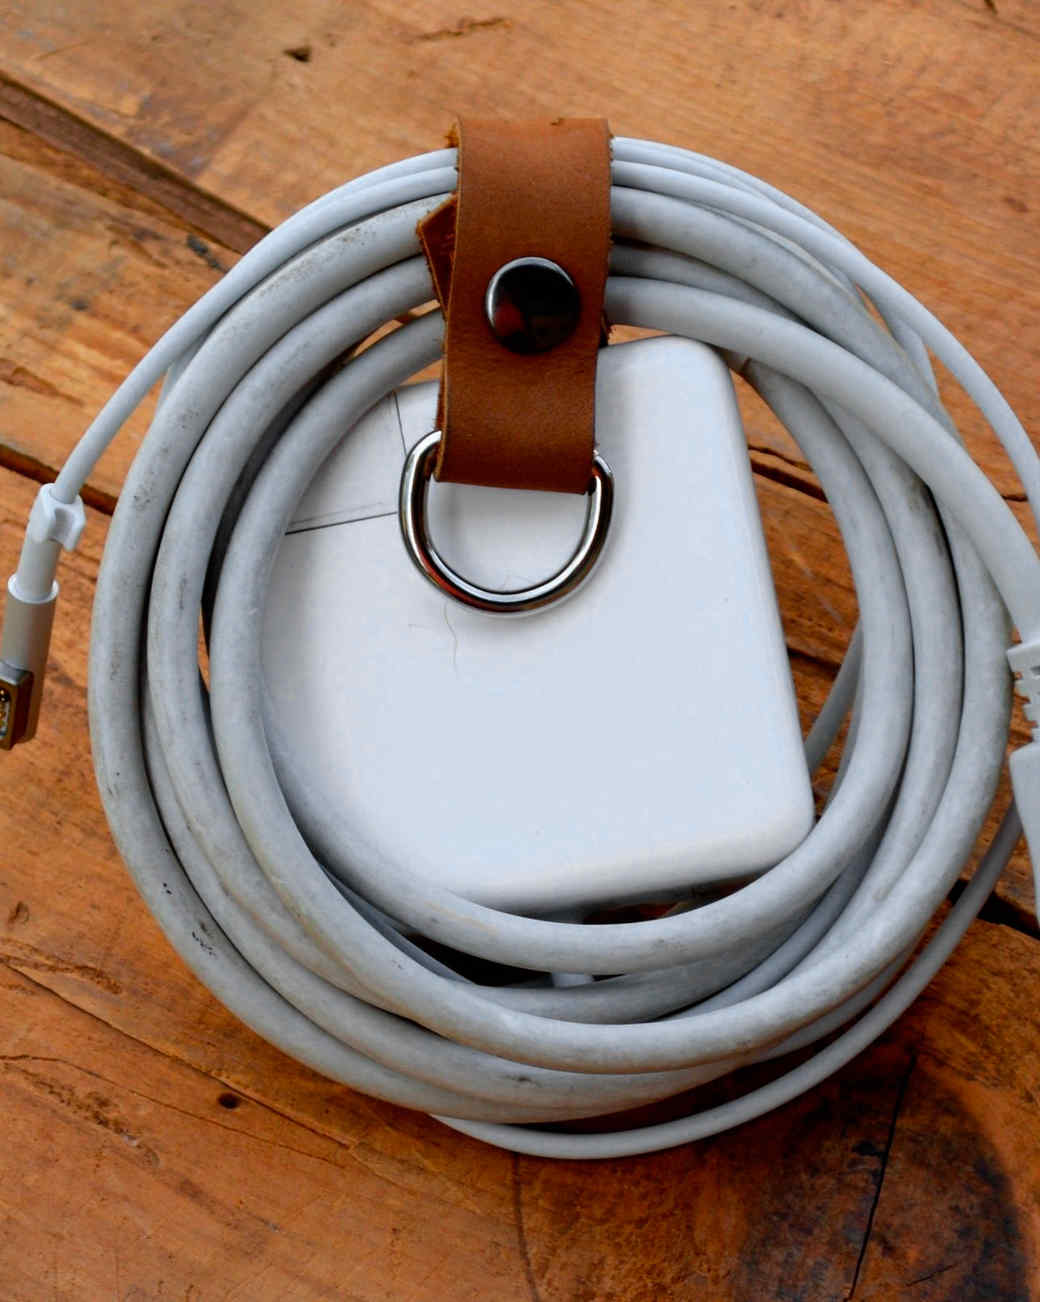 dust-bowl-dry-goods-leather-charger-wrap-0915.jpg